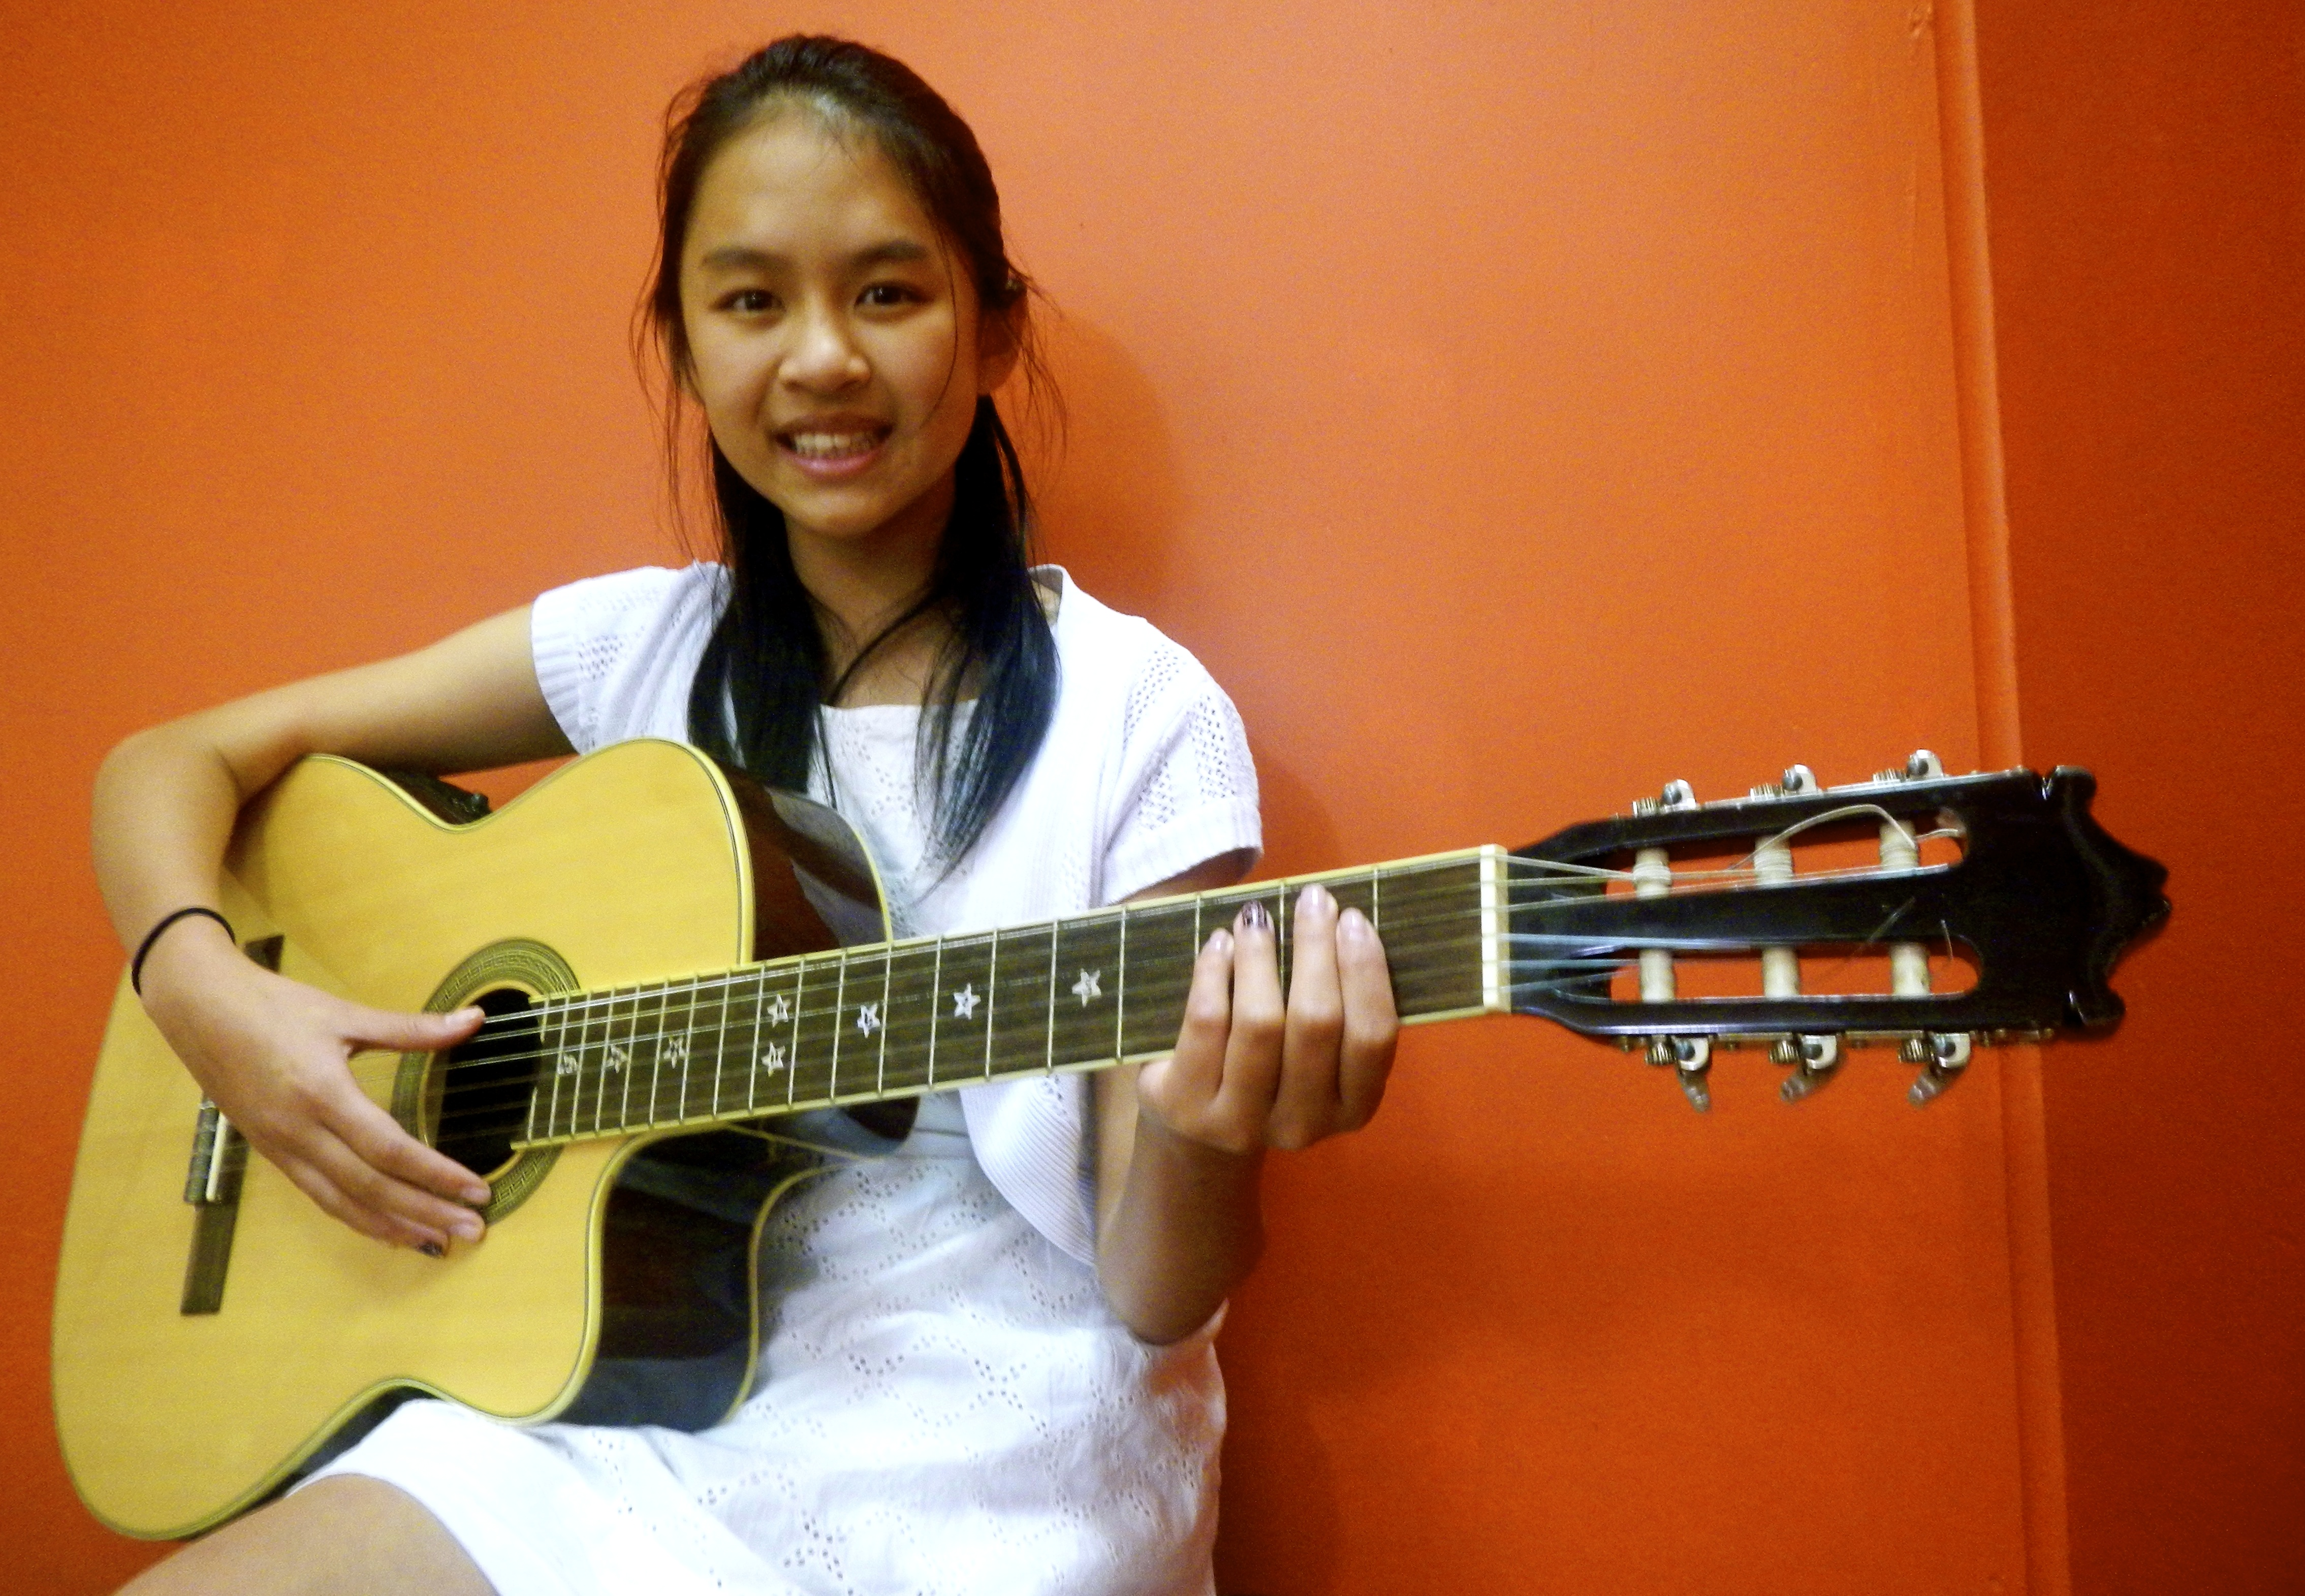 Kimberly Luong on Guitar